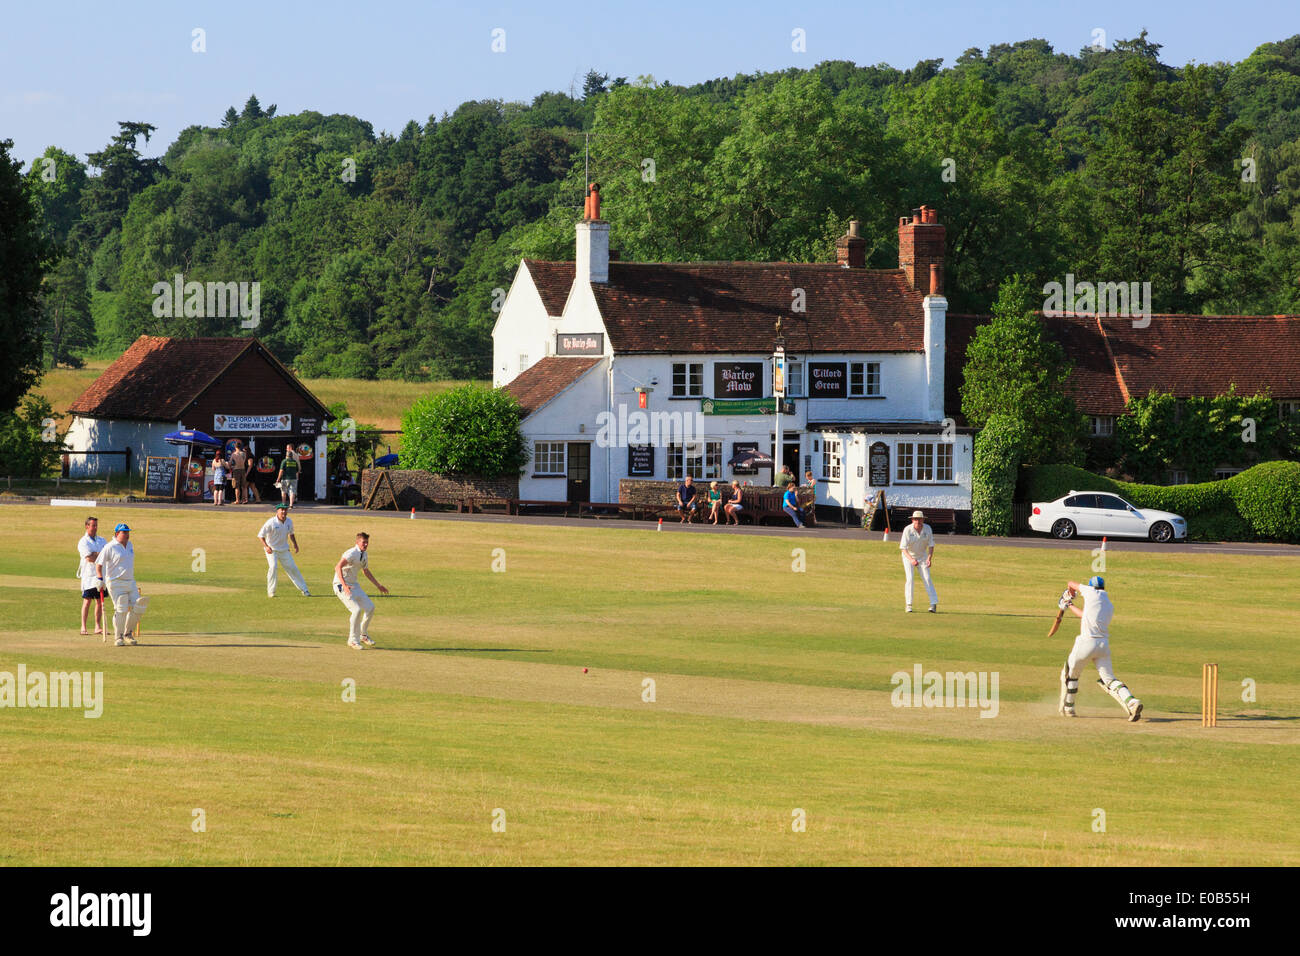 Local teams playing a cricket match on a village green in front of Barley Mow pub on a summer's evening. Tilford Stock Photo